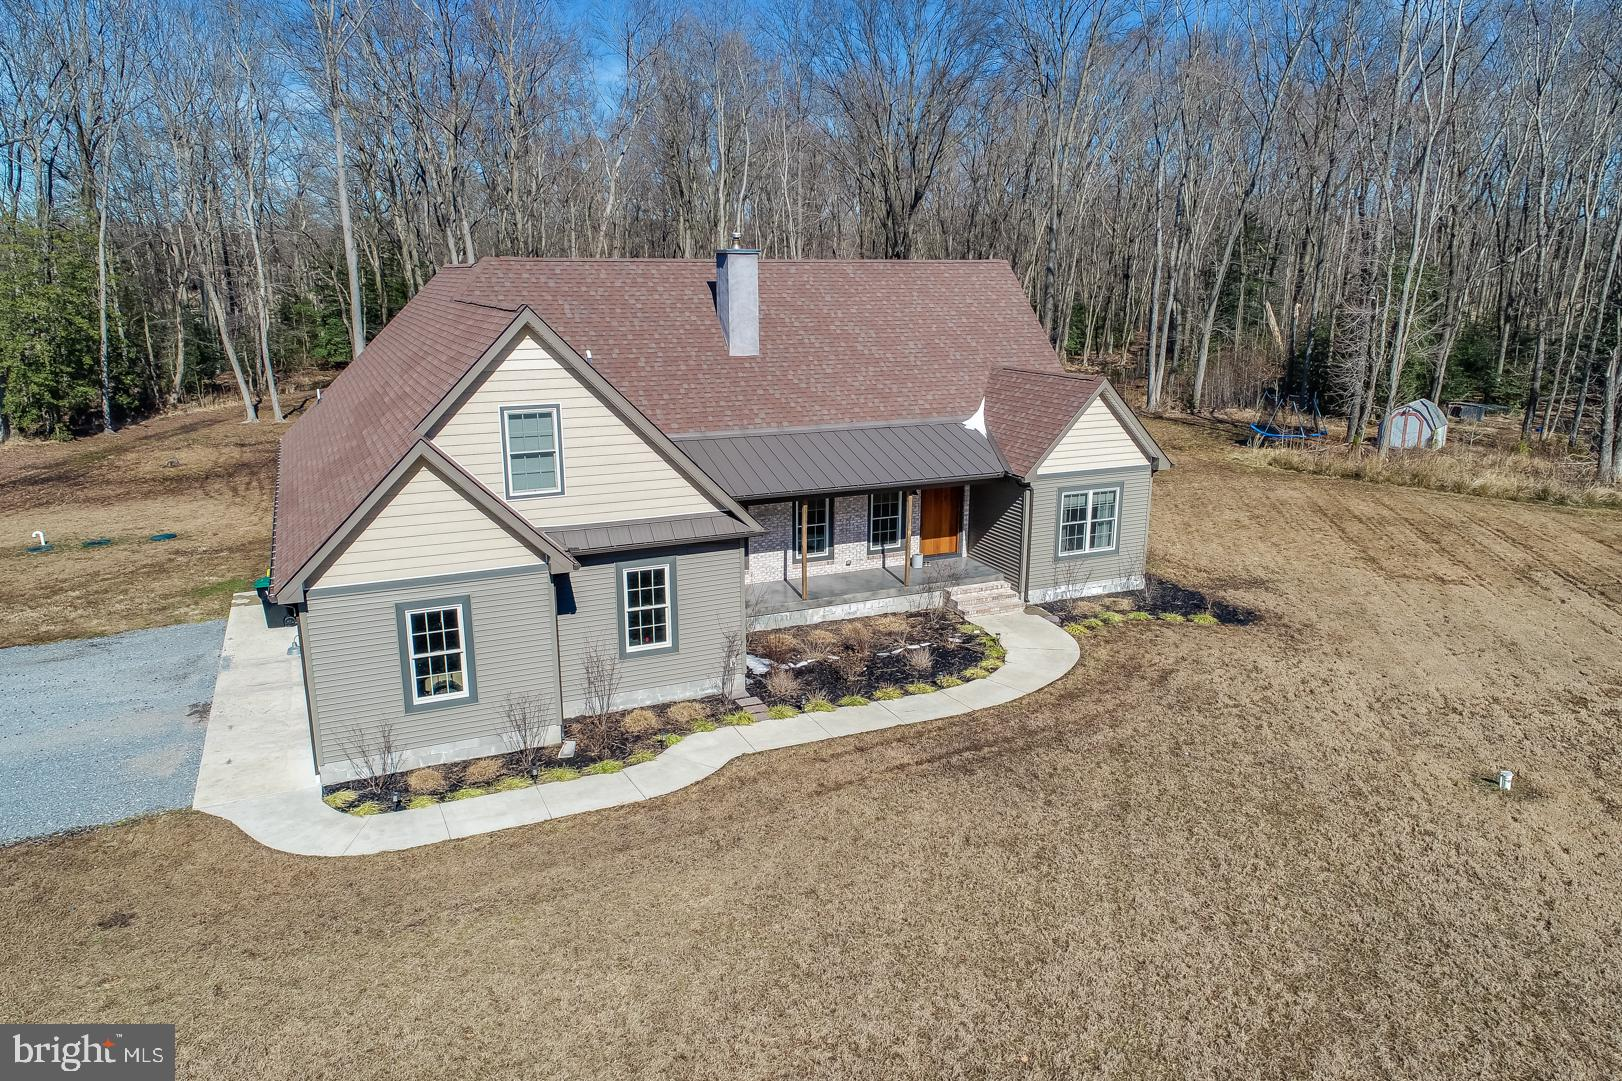 Looking for a little piece of heaven? Well you just found it. This custom built 3883 square foot, 4 bedroom 3 bath home sits in the middle of 10+/- acres of wooded land loaded with everything nature has to offer. The 10 acres includes a 6 acre parcel and a 4 acre parcel (9-00-07200-01-6300-000). There is also a 2 acre parcel that can be purchased separately. It's hard to know where to start. From the time you pull up the driveway you can see all the love and care that's been put into this home. Greet your guest at the  4x8 ft 2 inch  custom Mahogany front door as they wait on the covered 6x28 stained concrete front porch. Walk into the living room of this beautiful open floor plan and enjoy the warmth of the zero clearance wood stove with custom mantle, stained concrete hearth and modern ship lap accent wall. Engineered oak hardwood flooring is throughout the living area of the first floor that leads into the eating area and kitchen. The custom Amish built cabinets have soft close drawers and doors. You'll love the look of the stainless steel farm house sink, stained concrete countertops with tiled backsplash and stainless steel appliances. There is also a hidden 4x13 pantry for additional storage. The kitchen island is fitted with a custom Maple counter top. You can sit at the dinning table and look out your French doors overlooking the covered porch and spacious back yard. There is a first floor master with 9x11 walk in closet with custom closet organizer, a sitting area and full bath with walk in shower,and a soaking tub. Glass door to be installed on Master bath Shower.   Two additional bedrooms, 9x8 laundry room, another room currently being used as an office  are also on the main floor. The extra wide hallway with custom locker area for coats and shoes for each member of the family leads you to  your inside access to the over sized  26x27 garage with custom oversized cypress overhead doors . As you top the stairs to the second floor the first thing you'll notice is the unique Epoxy floor in the 20x30 family room. There is also an 18x30 play room, a 4th bedroom and a full bath. All of the bedroom closets on the main  level have custom organizers and all interior doors are solid core raised panel doors. With dual heat and AC zones you can be comfortable both  downstairs and up. This all sits on top of a conditioned crawl space, Now let's take a journey outdoors to the 40x60 outbuilding that is currently being used as a shop for a home based business. There is also a 26x17 bump out that could be used as a showroom or offices and there is also a 7x14 bump out. The entire building is heated by radiant floor heat generated by an outdoor wood stove. The outside of the outbuilding is tastefully covered with Cypress siding. Custom built, amazing, comfortable and peaceful are just a few of the words you could use to describe this home. Put this one on your list of homes to see today.